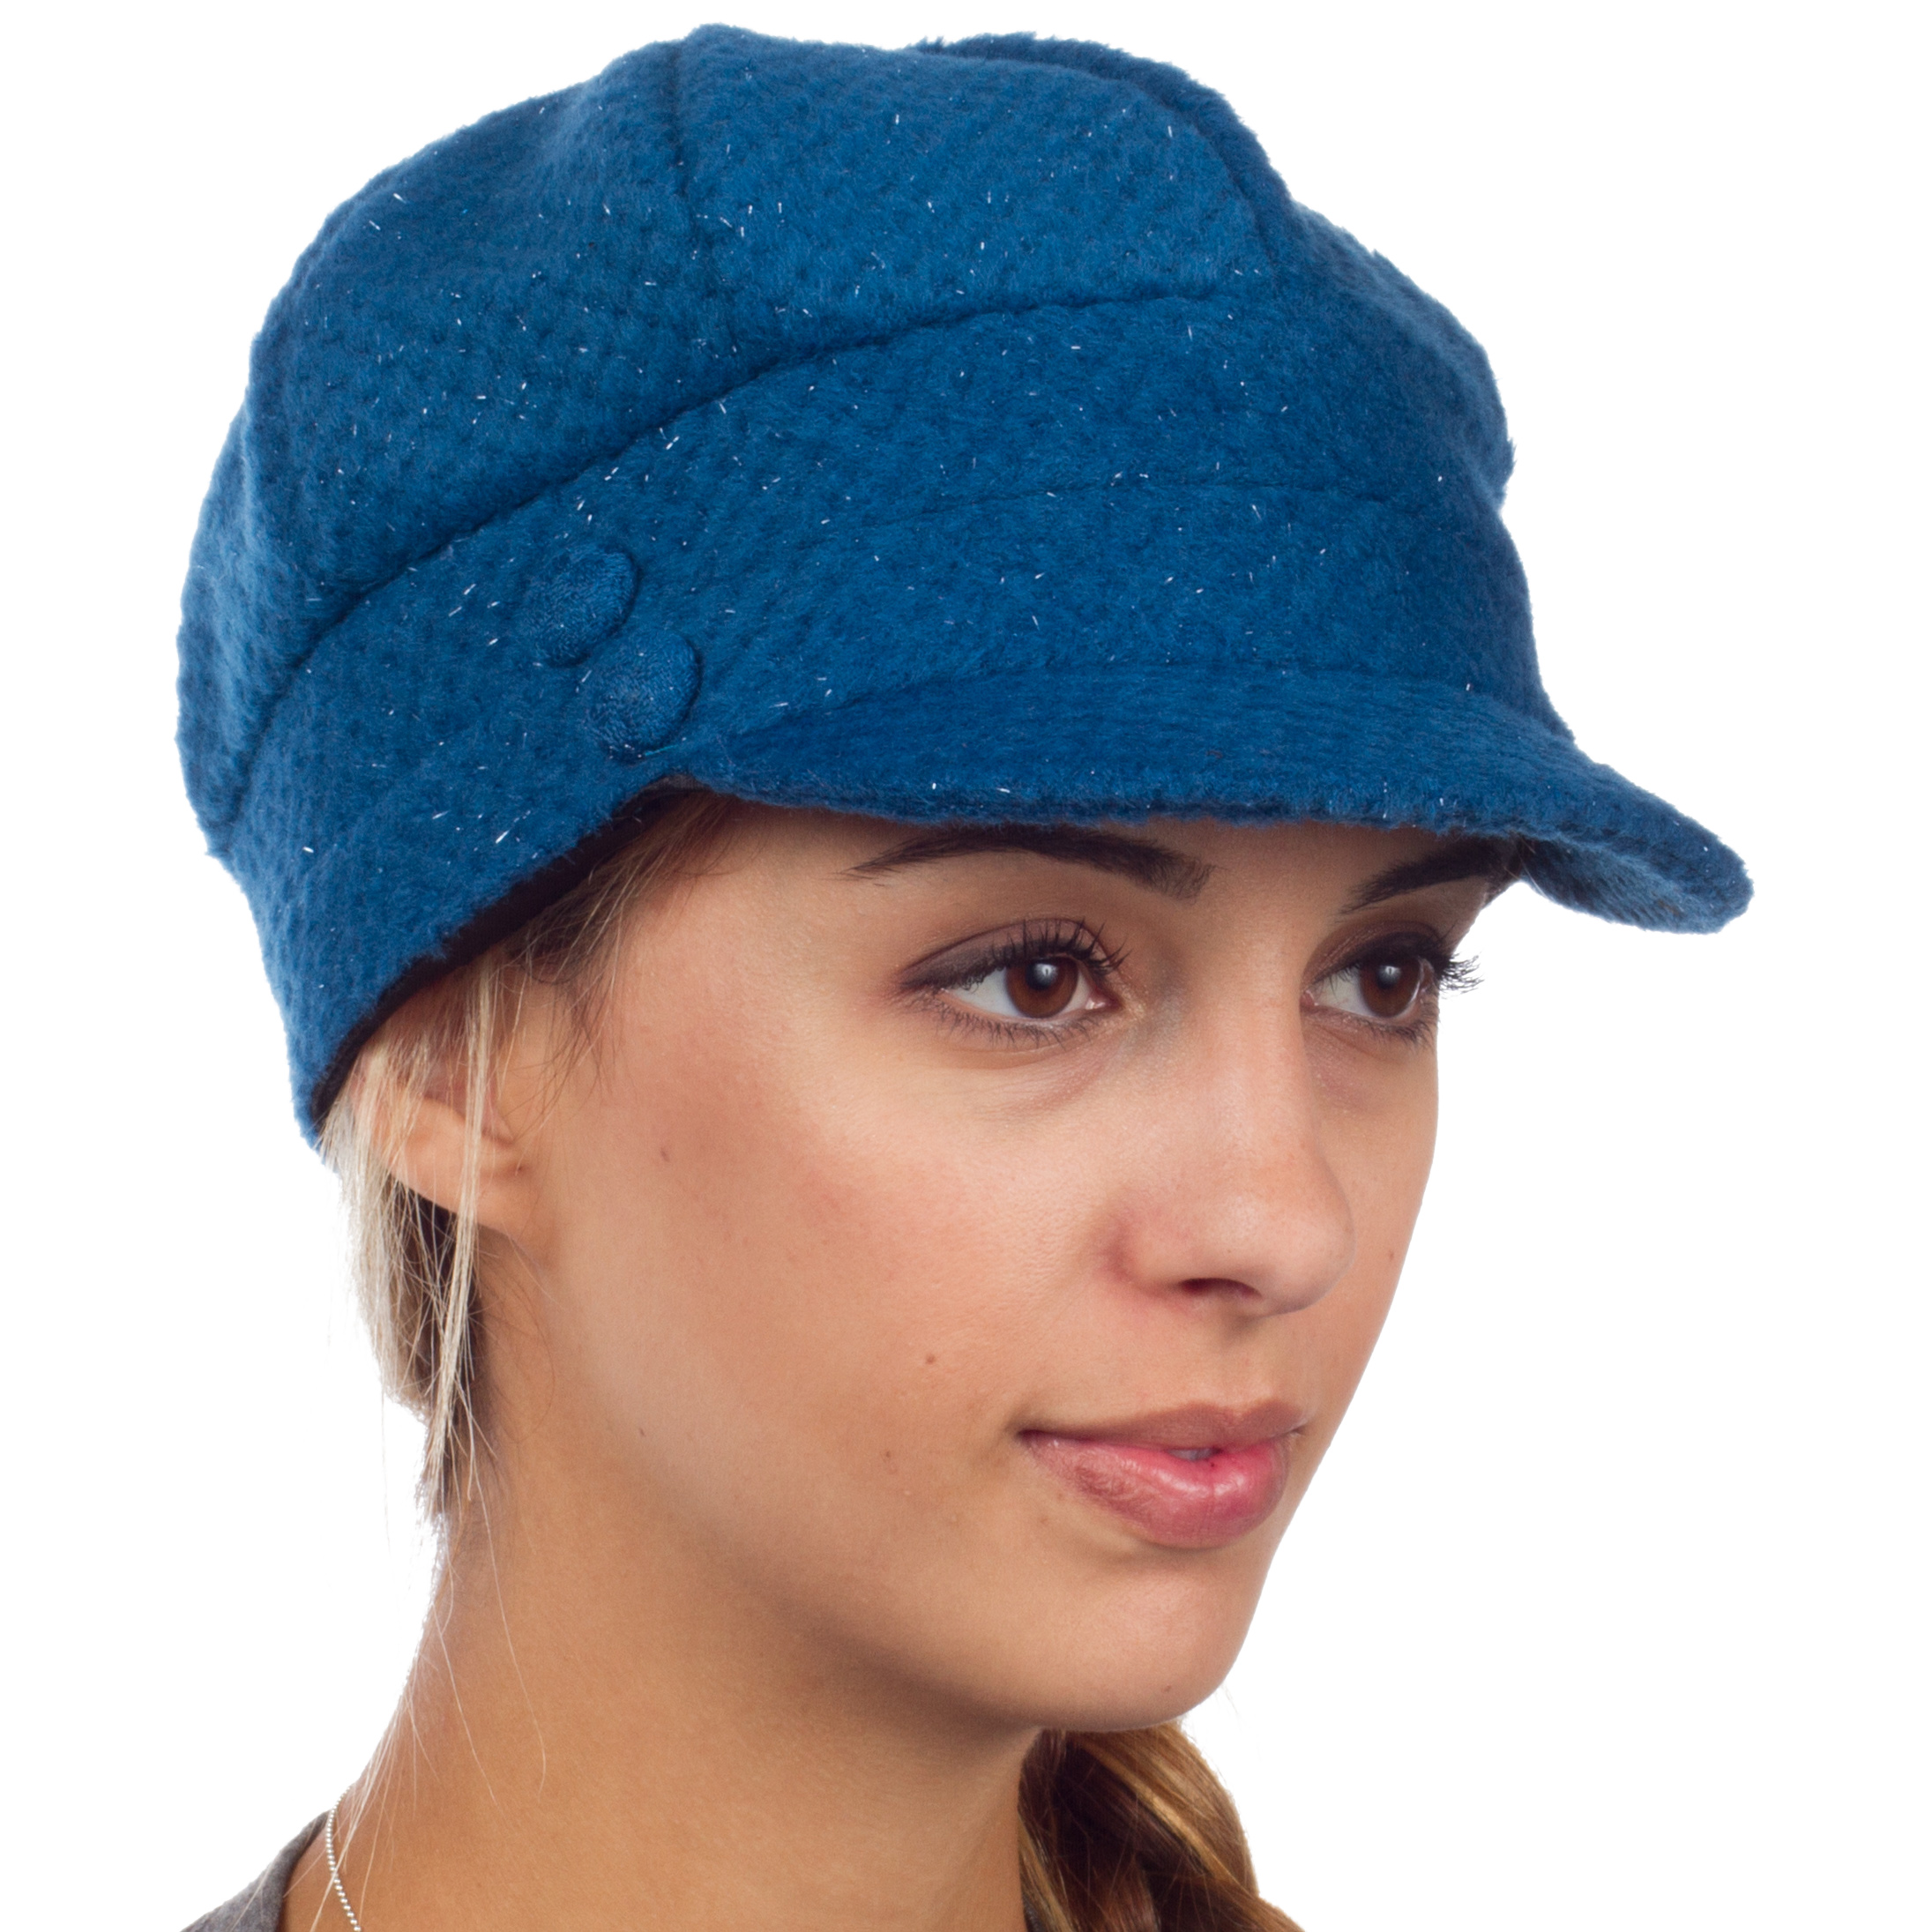 Sakkas Womens Wool Blend Newsboy   Cabbie Winter Hat   Cap with Buttoned Detail Blue One... by